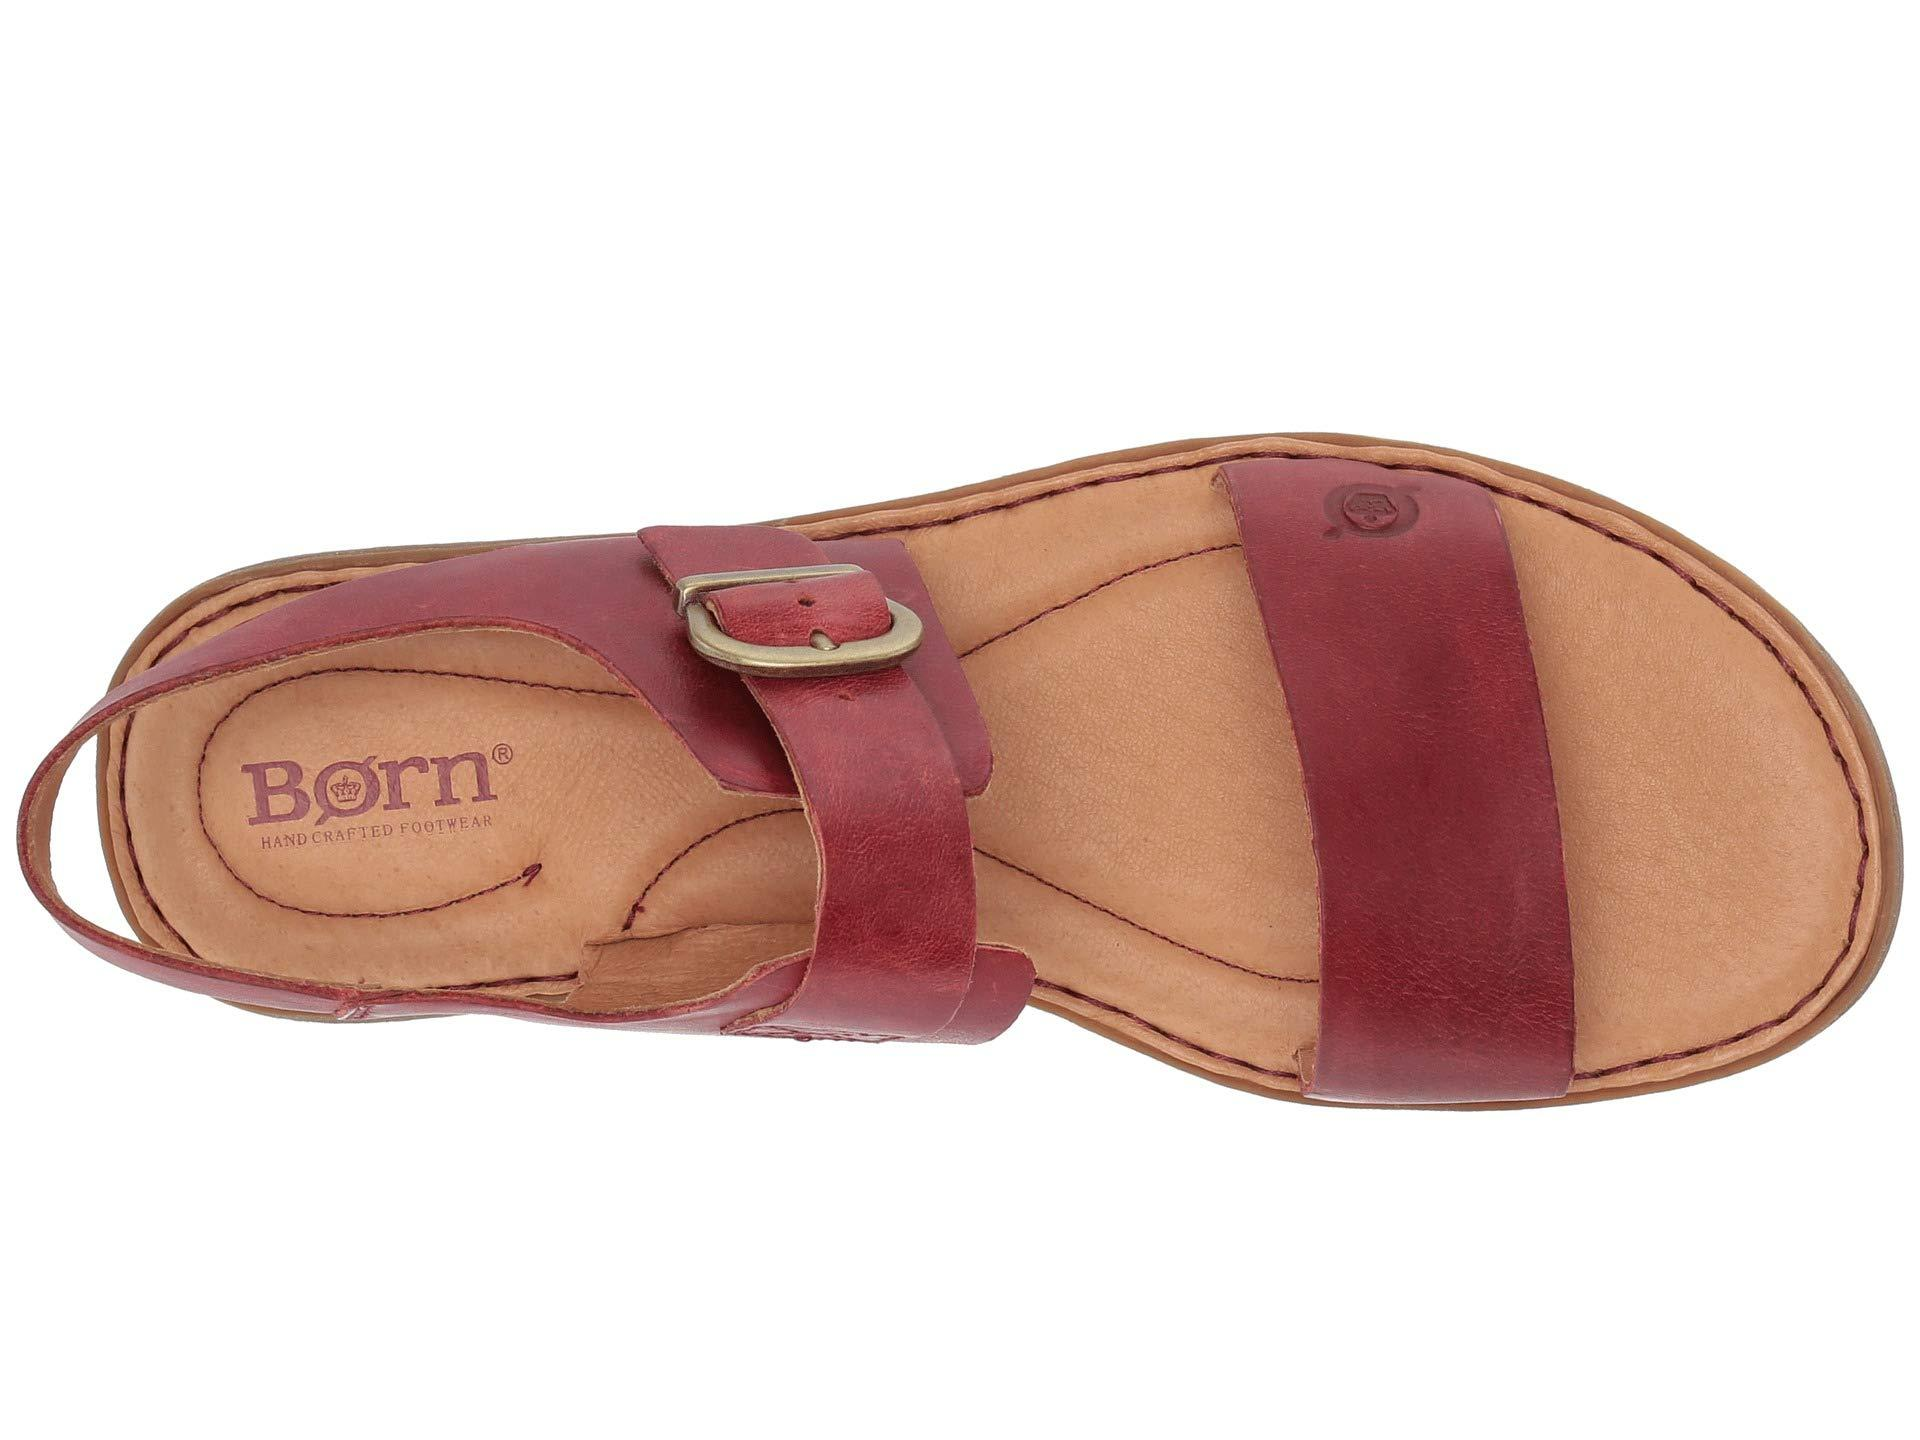 333c292ac2f Lyst - Born Selway (black Full Grain Leather) Women s Sandals in Red